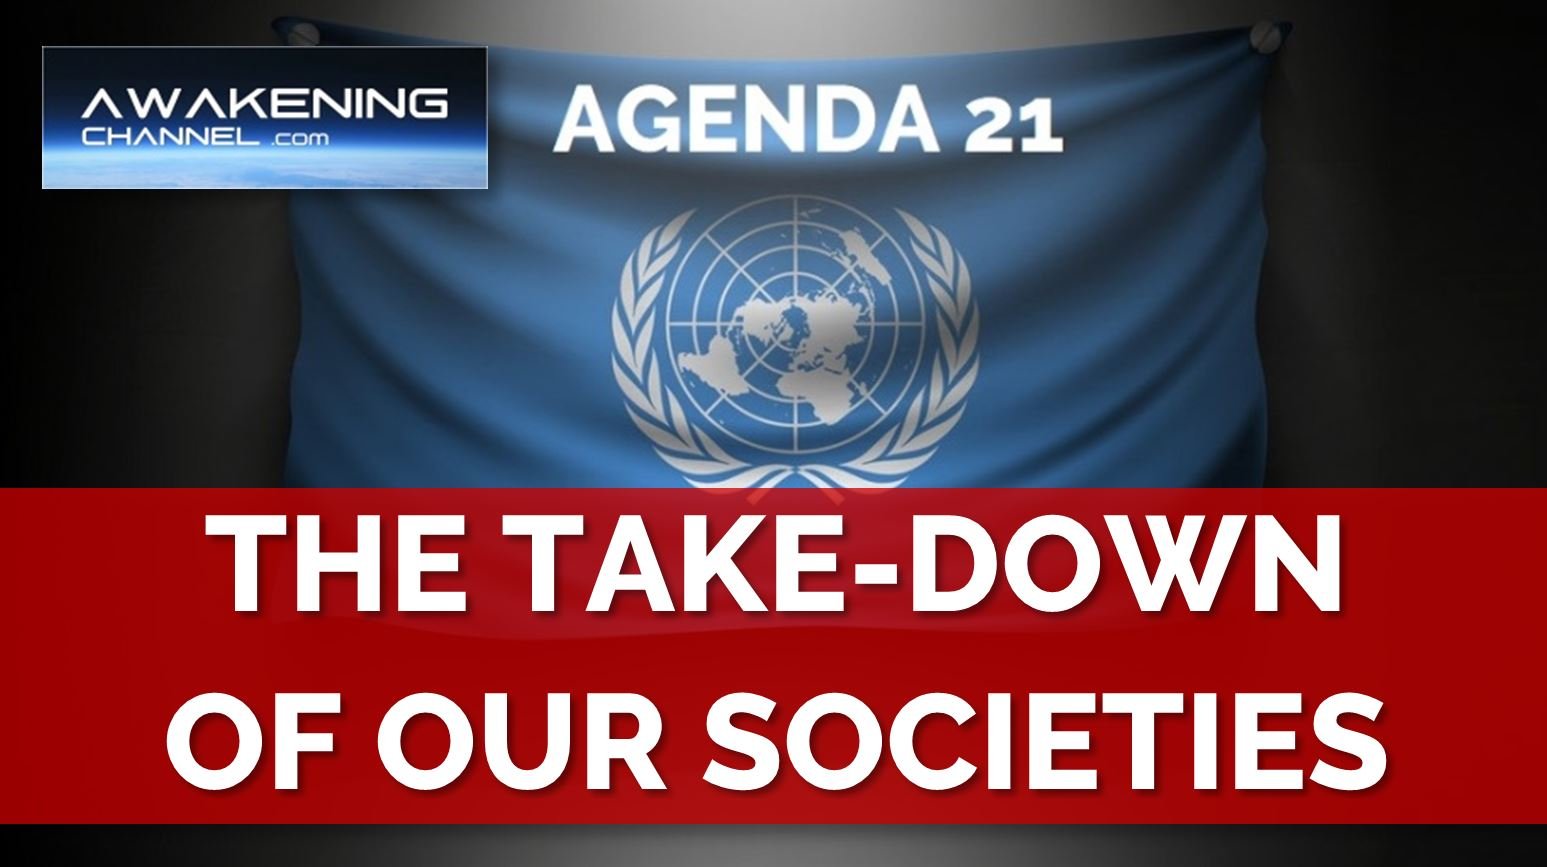 World Freedom & Doctors Alliances: The UN & The Take-Down of Our Societies